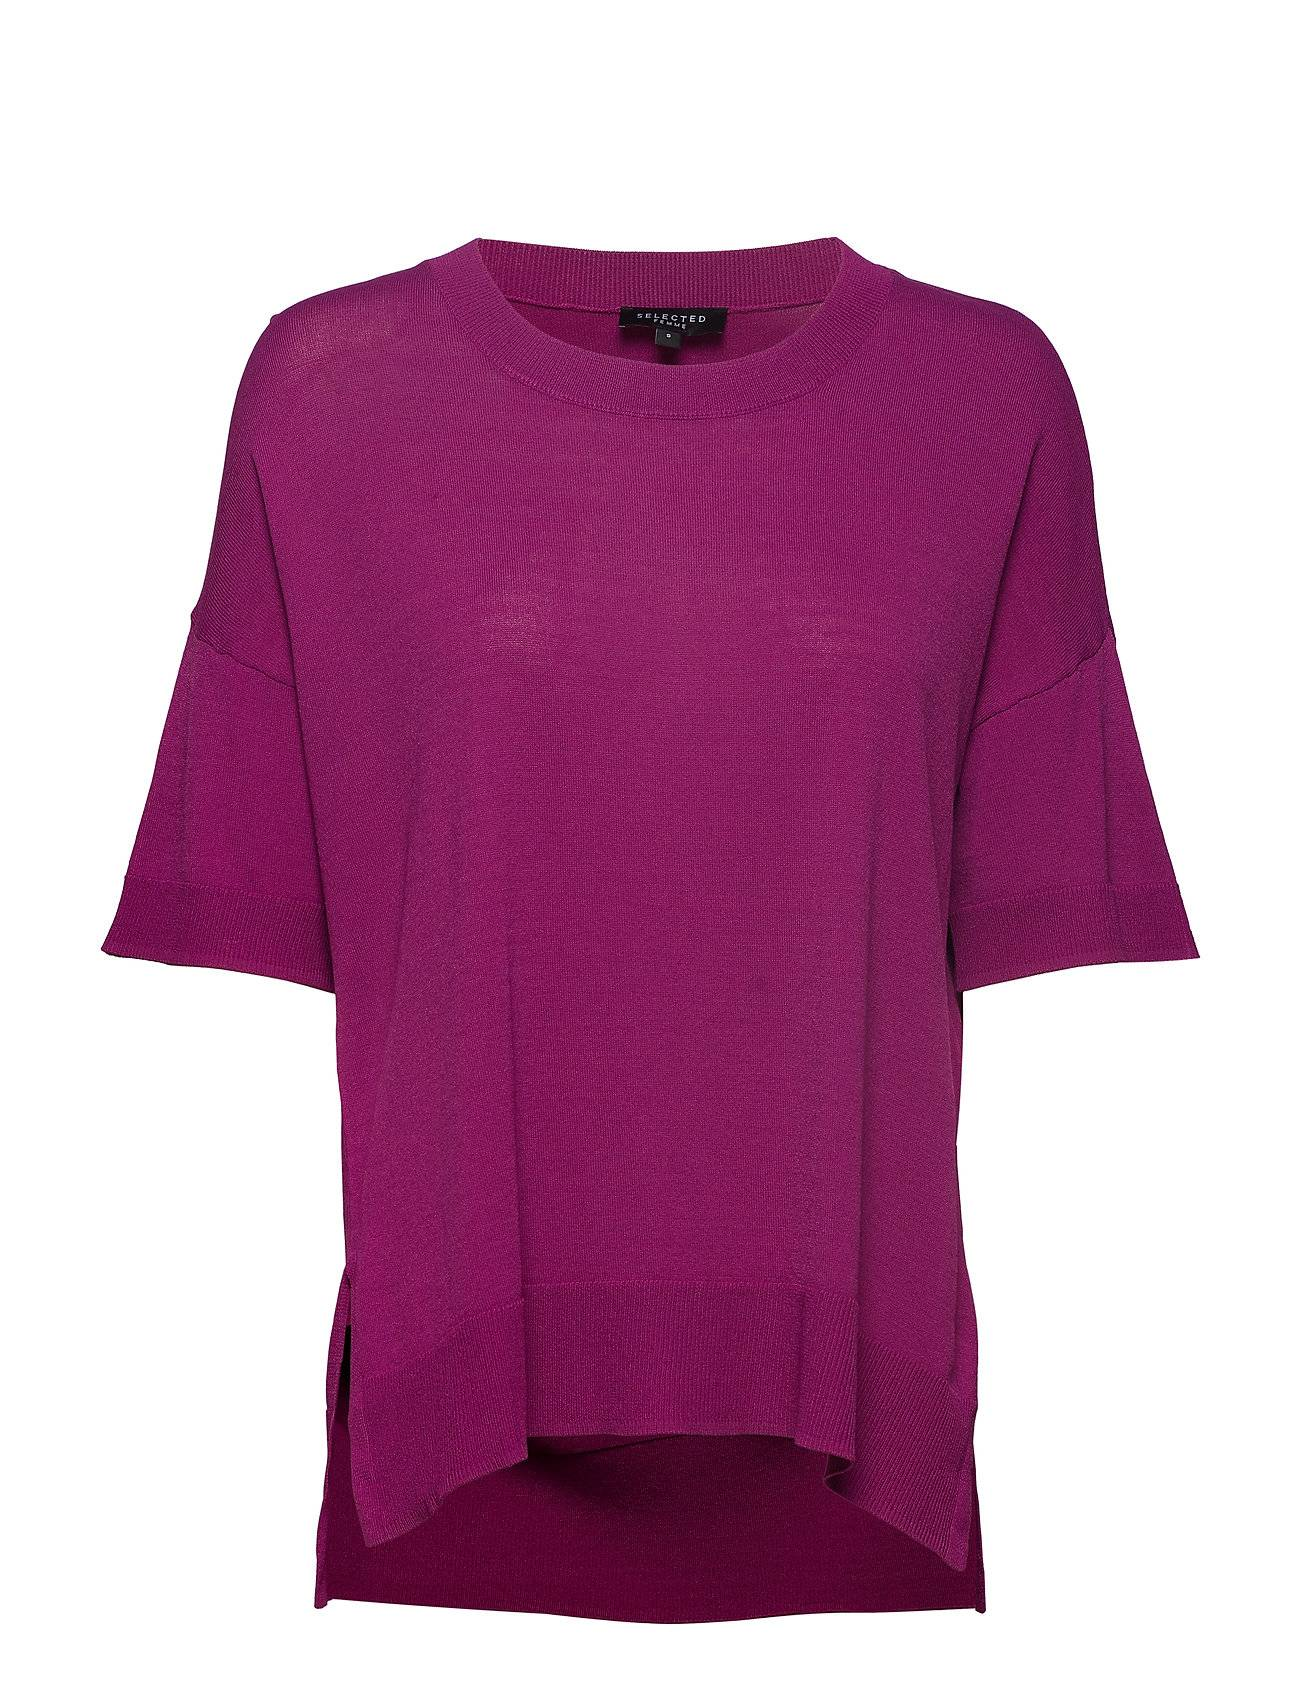 Selected Femme Sfwille Ss Knit Pullover Blouses Short-sleeved Liila Selected Femme